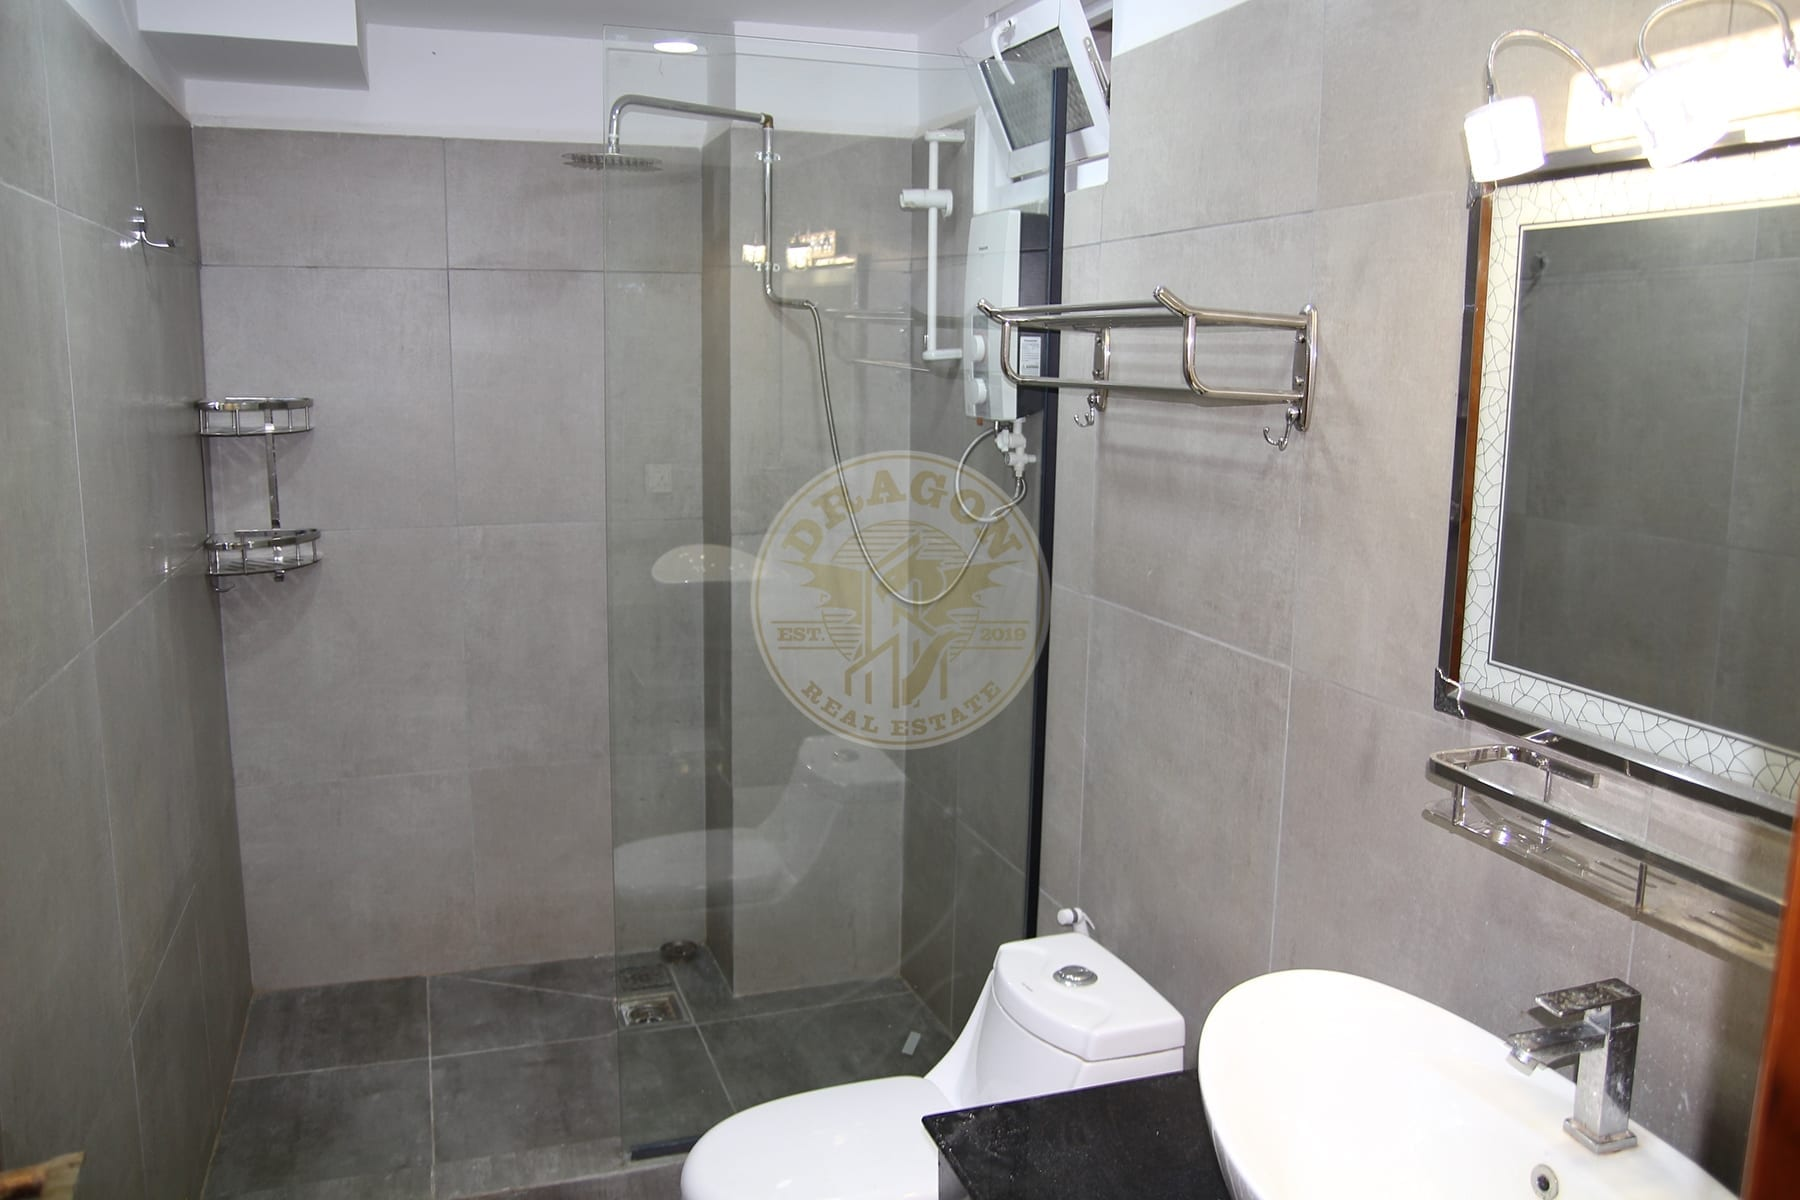 City Outside. Tranquility Inside. Studio for Rent in Sihanoukville. Real Estate in Sihanoukville